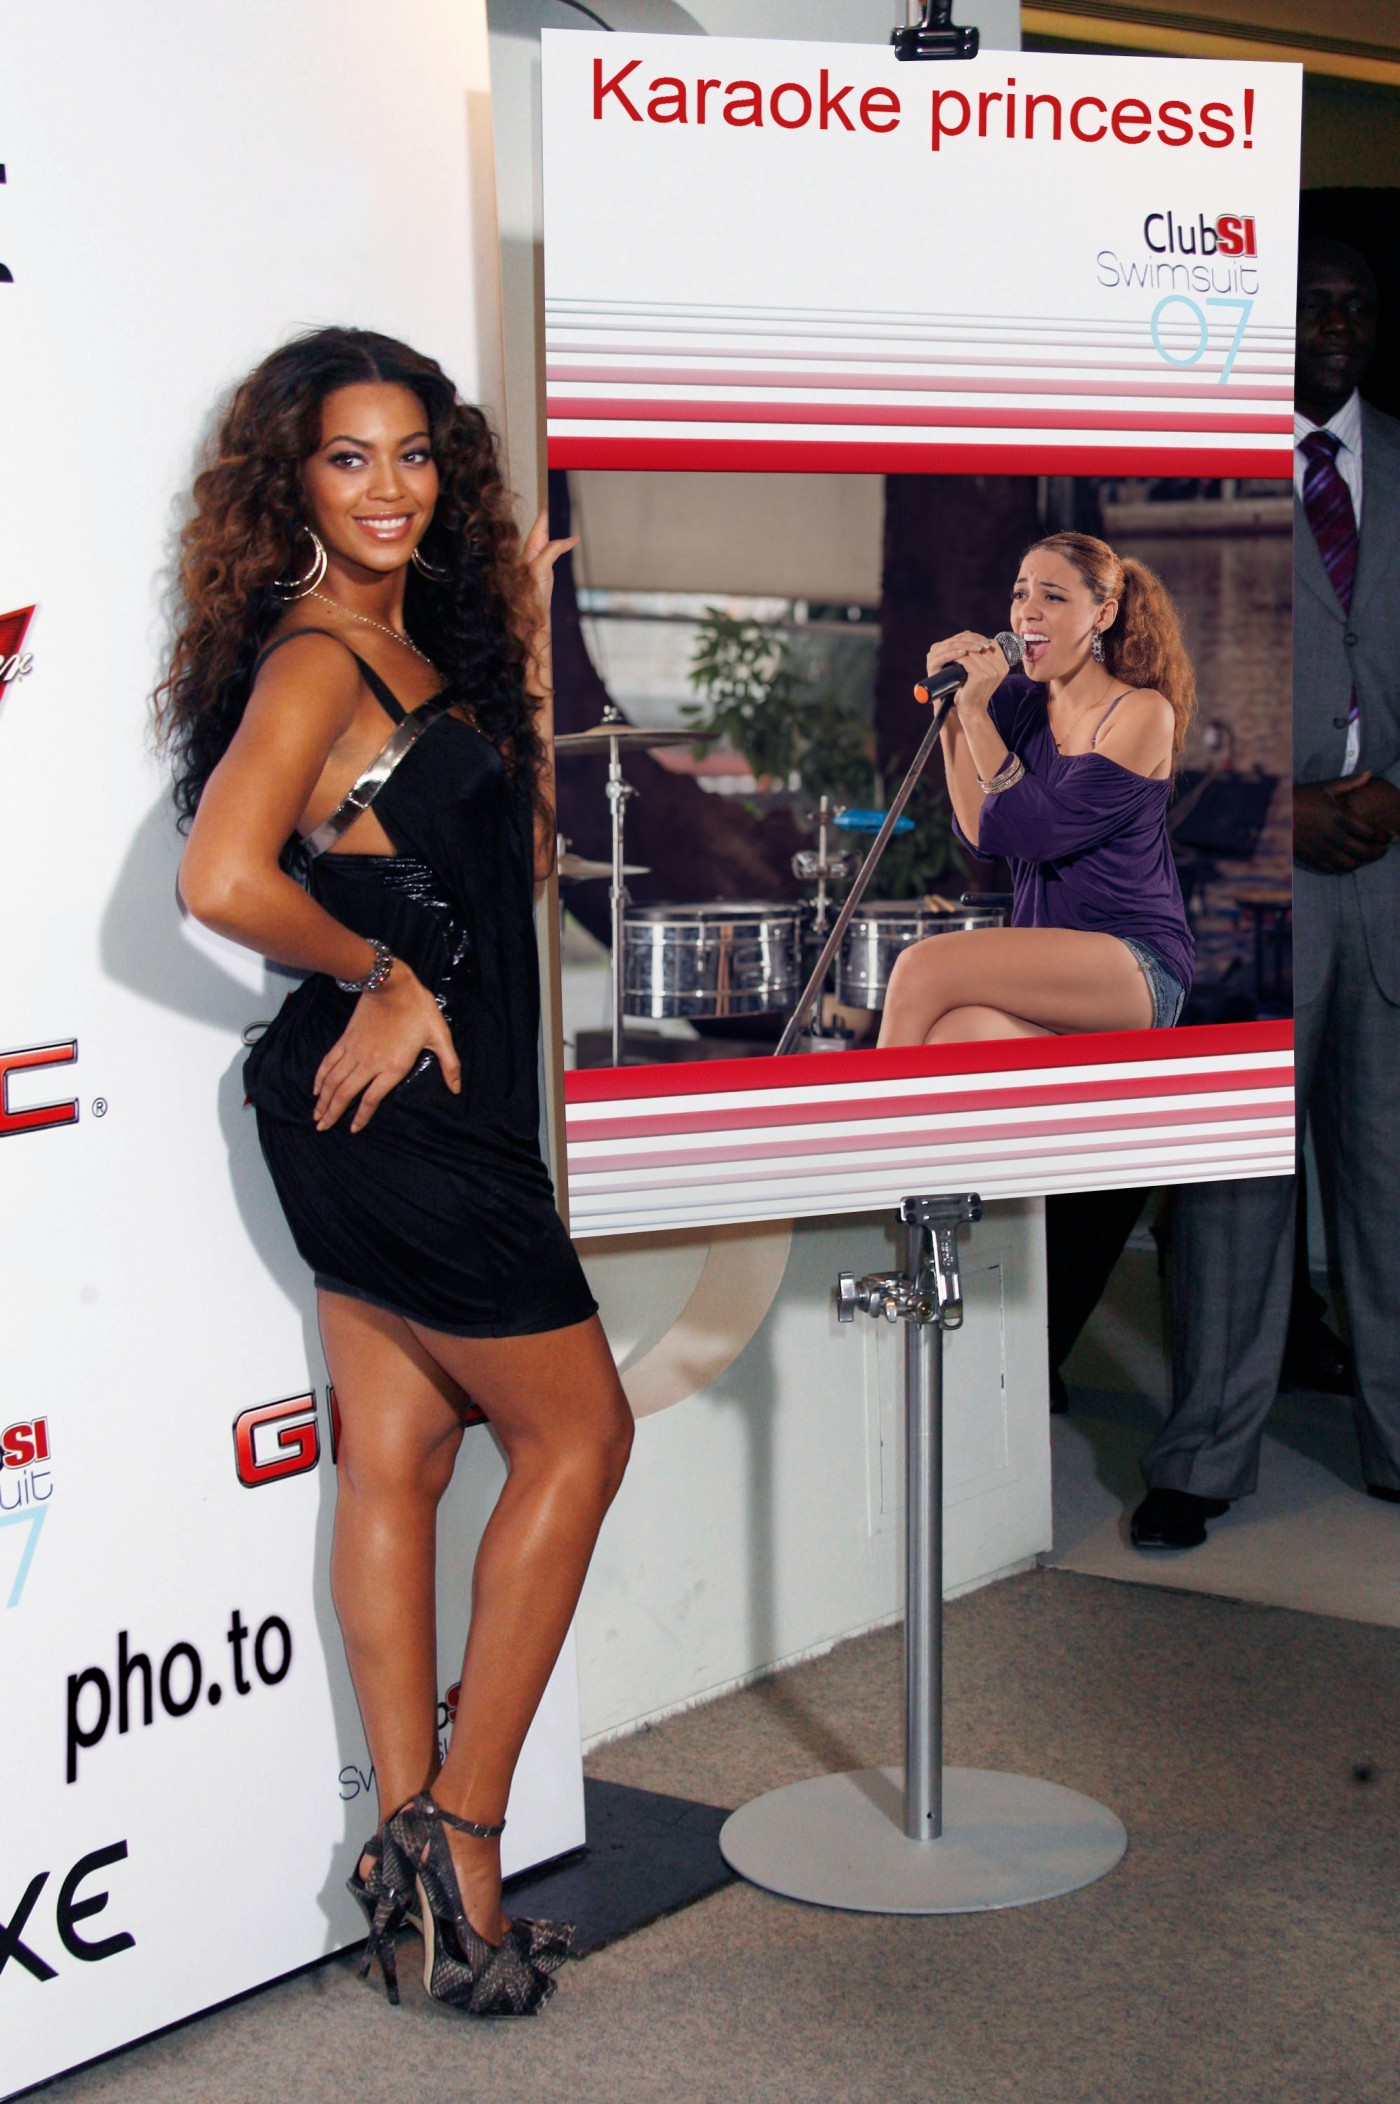 Girl's photo is added to the 'Beyonce' photo montage.